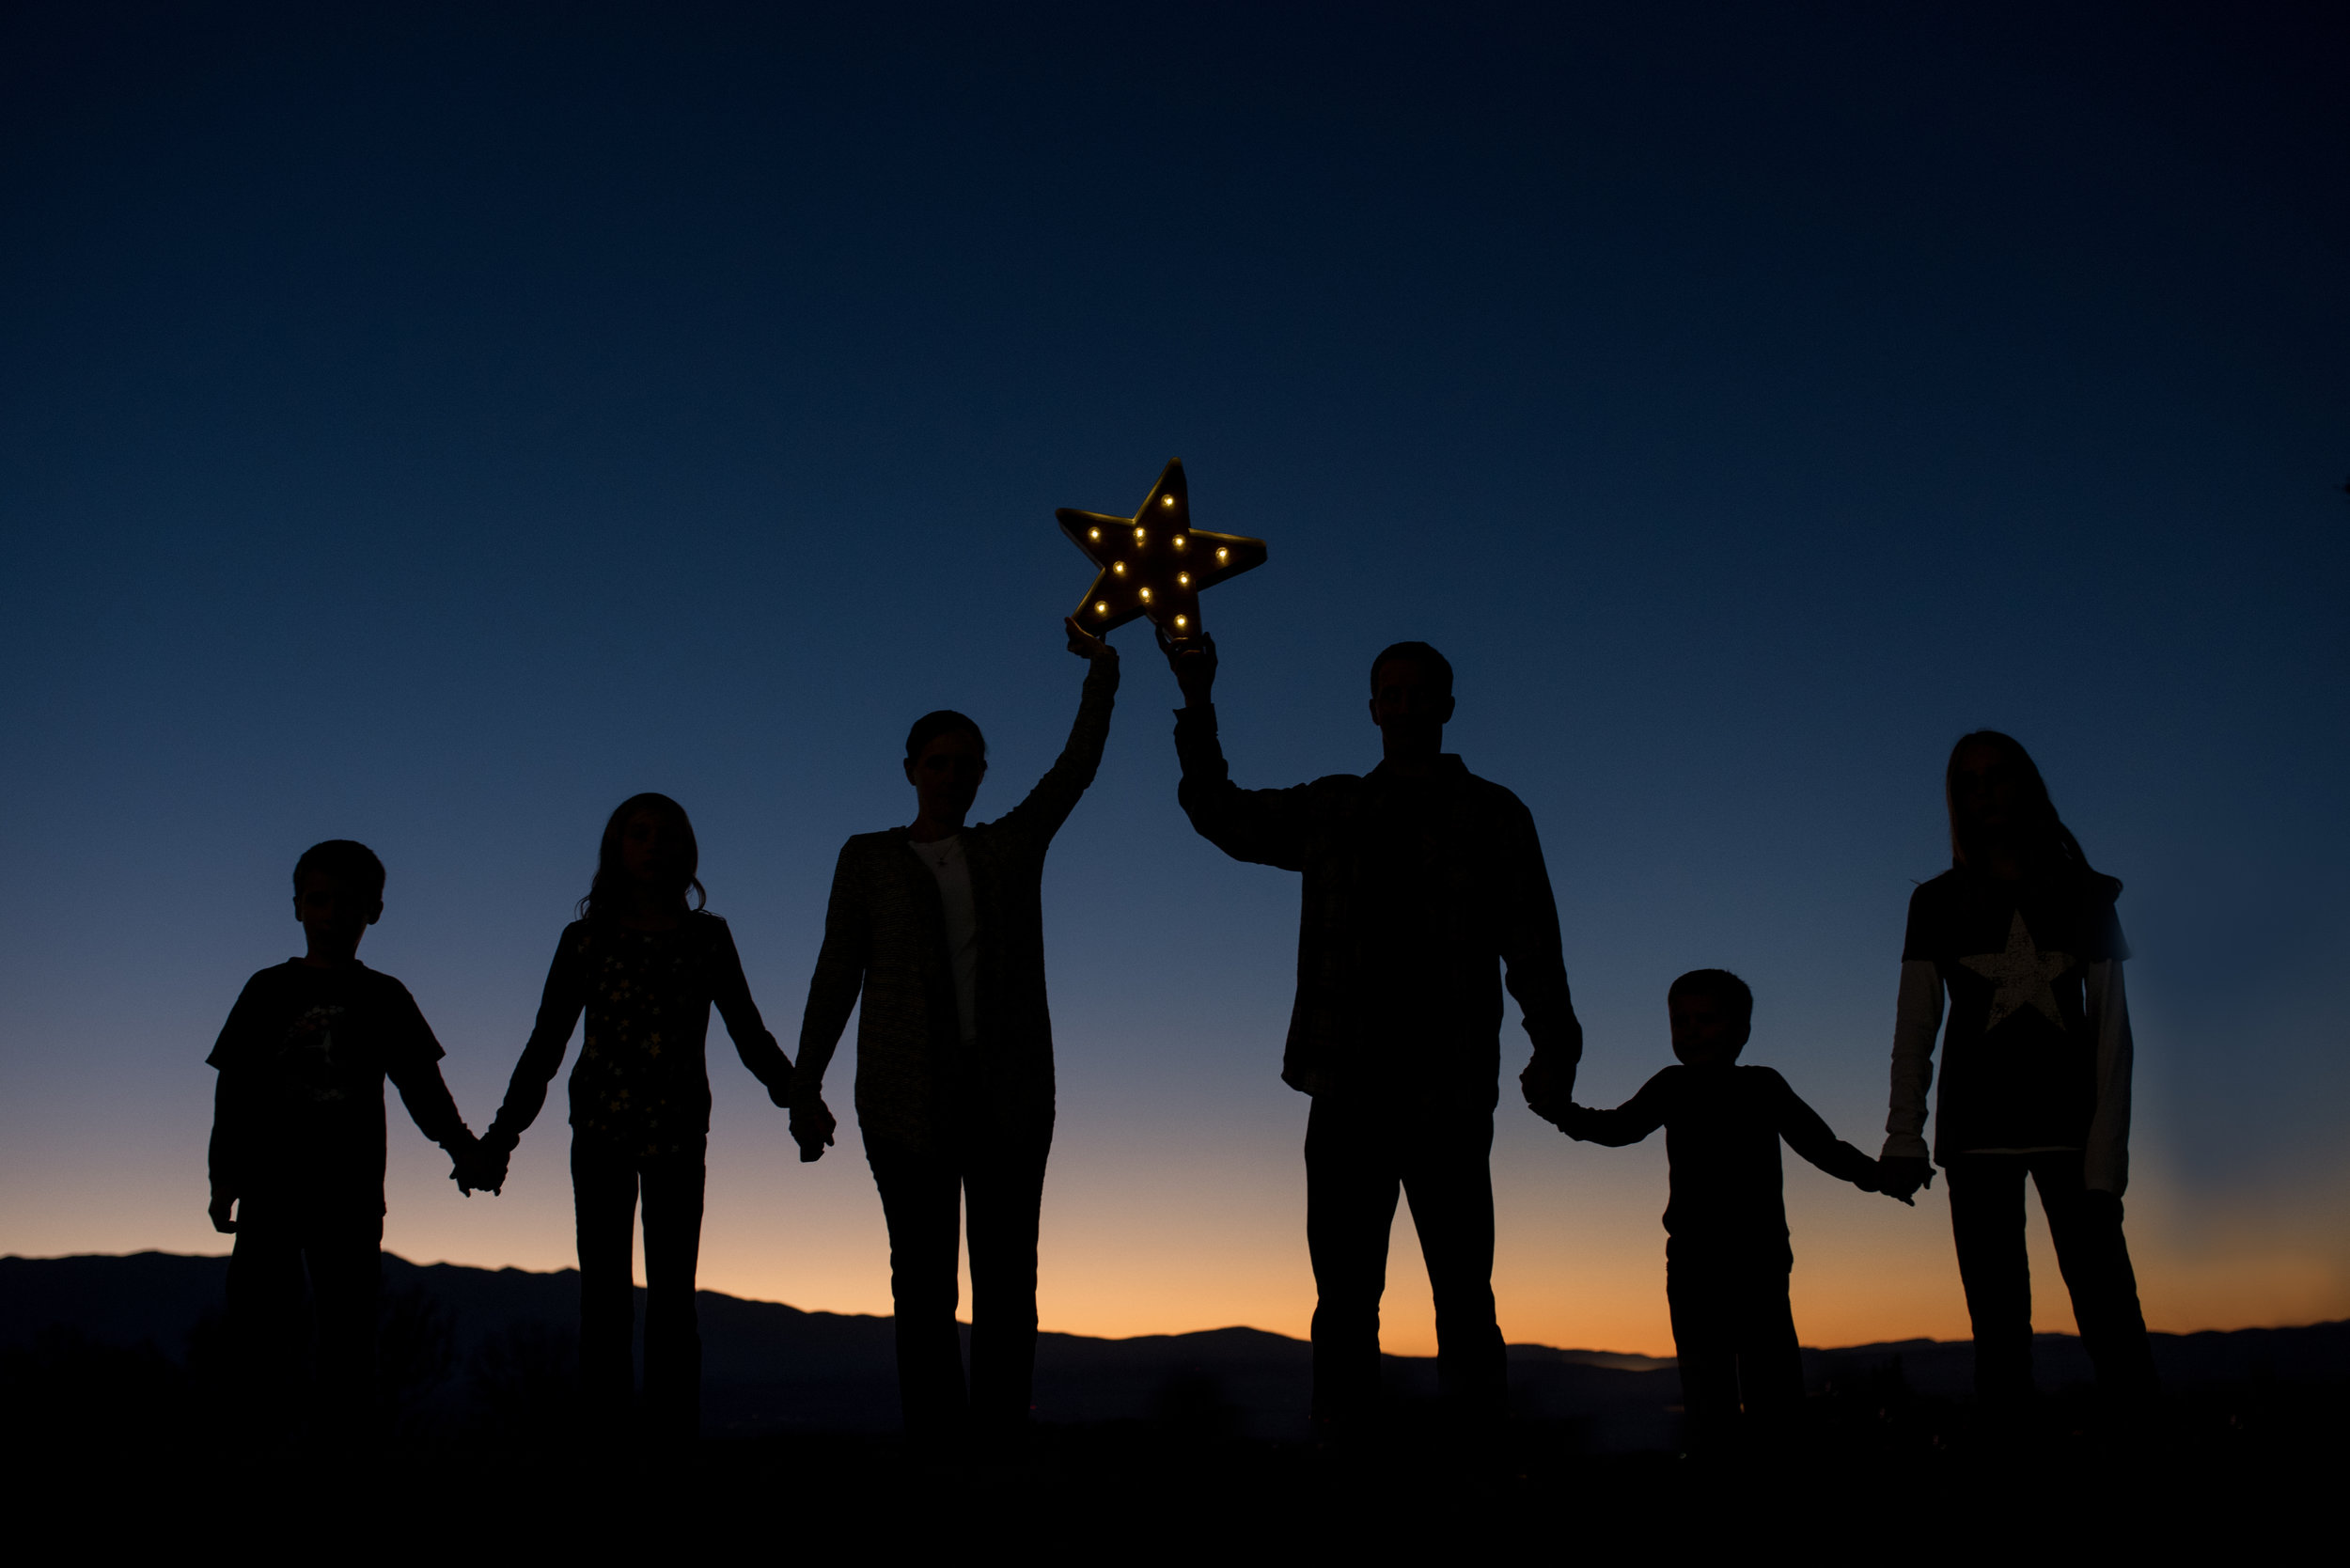 silhouette-family-photography-logan-utah